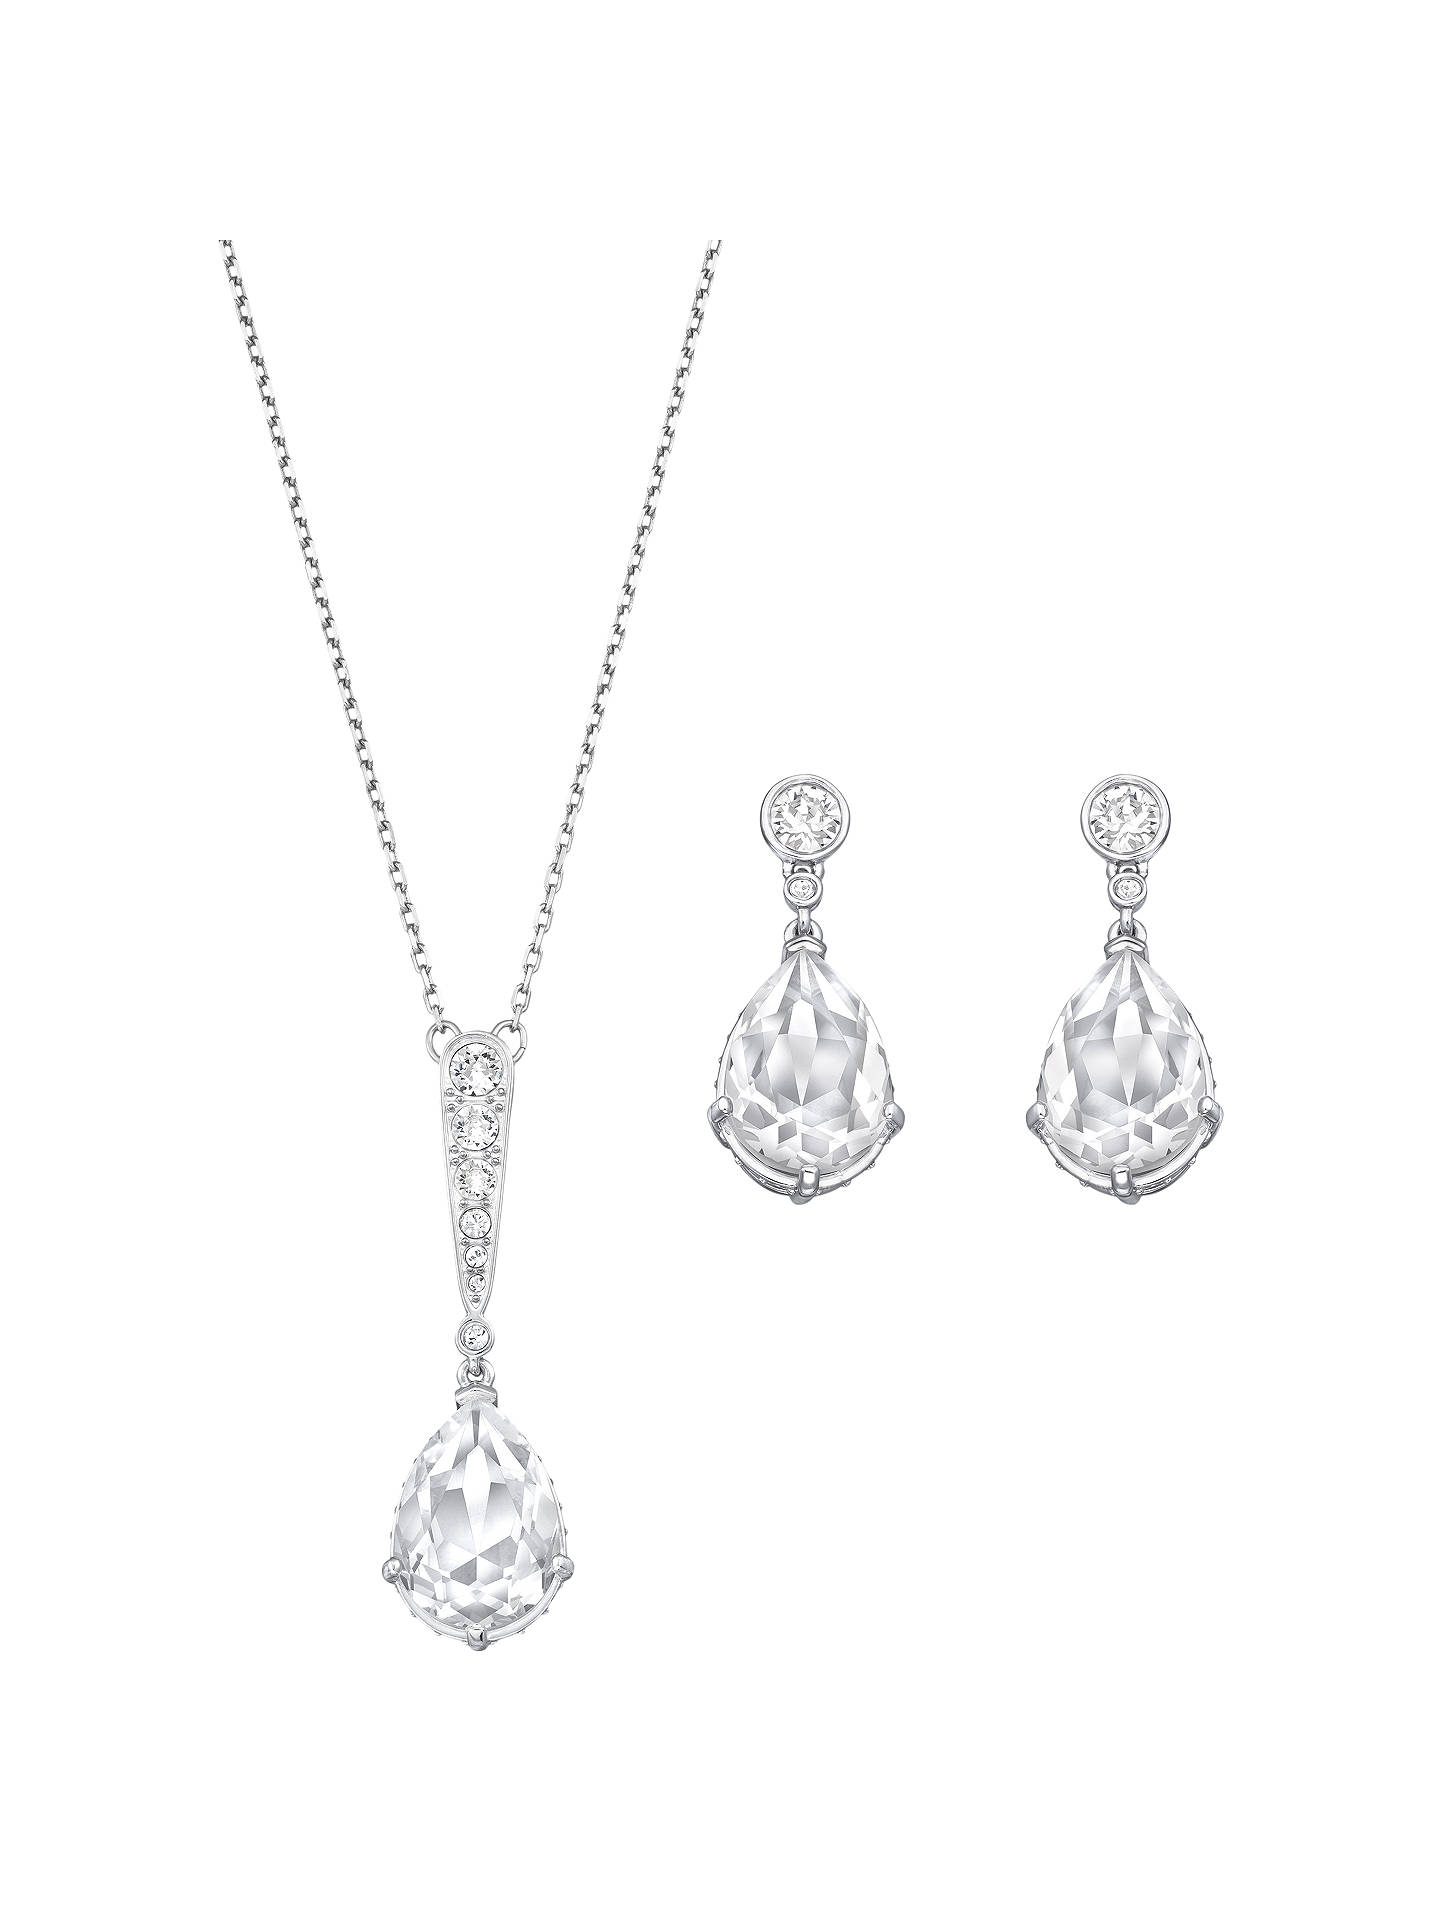 52af98a86 Buy Swarovski Vintage Teardrop Crystal Pendant Necklace and Drop Earrings  Jewellery Gift Set, Silver Online ...